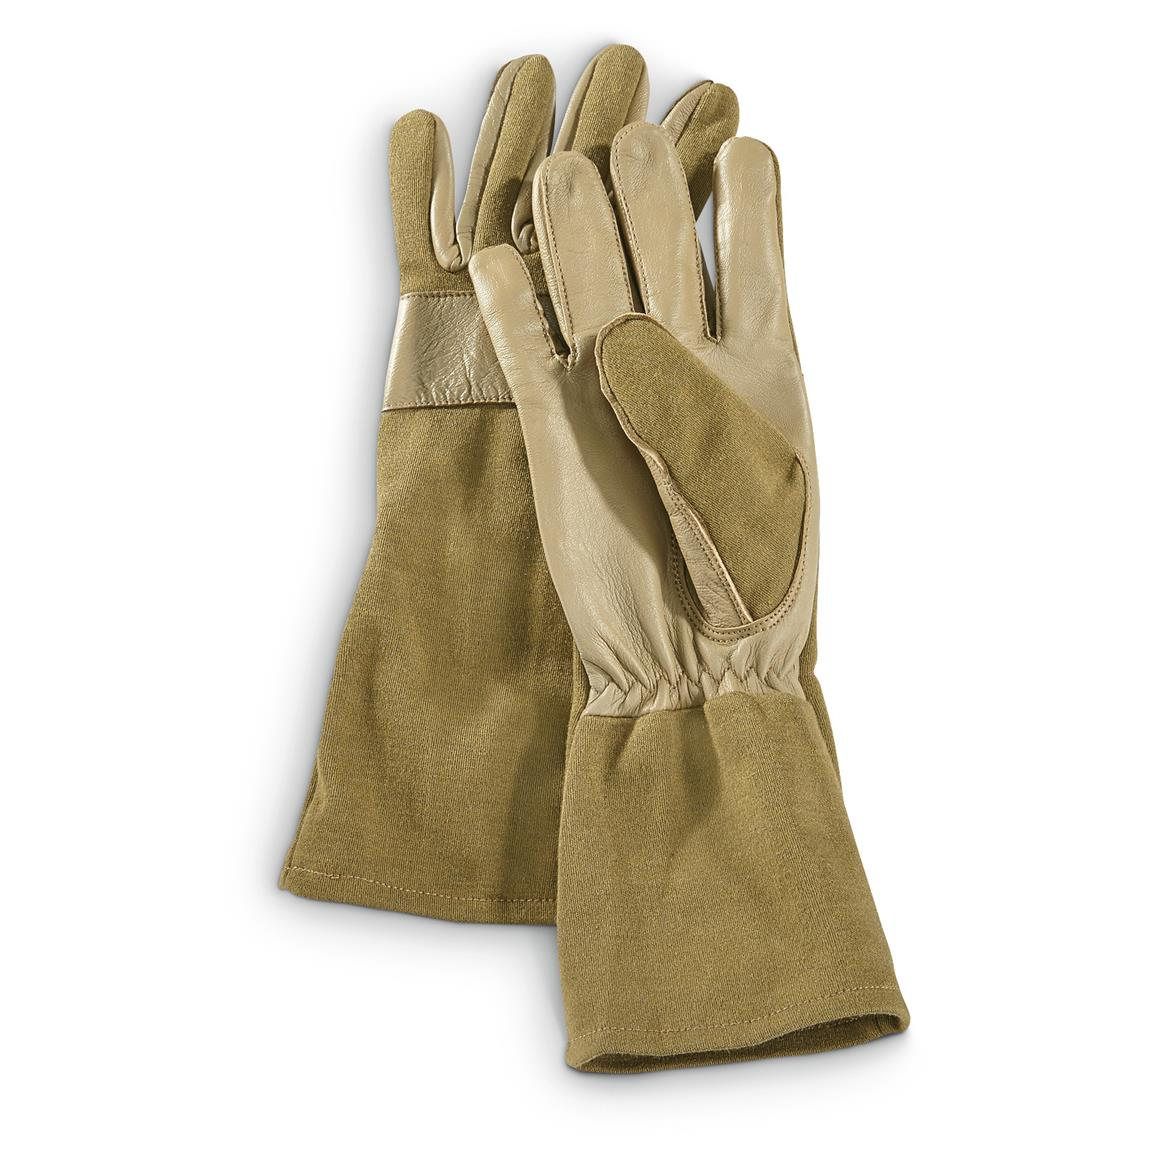 Miltec Military Style Pilot Gloves, Nomex Fire Resistant, Coyote